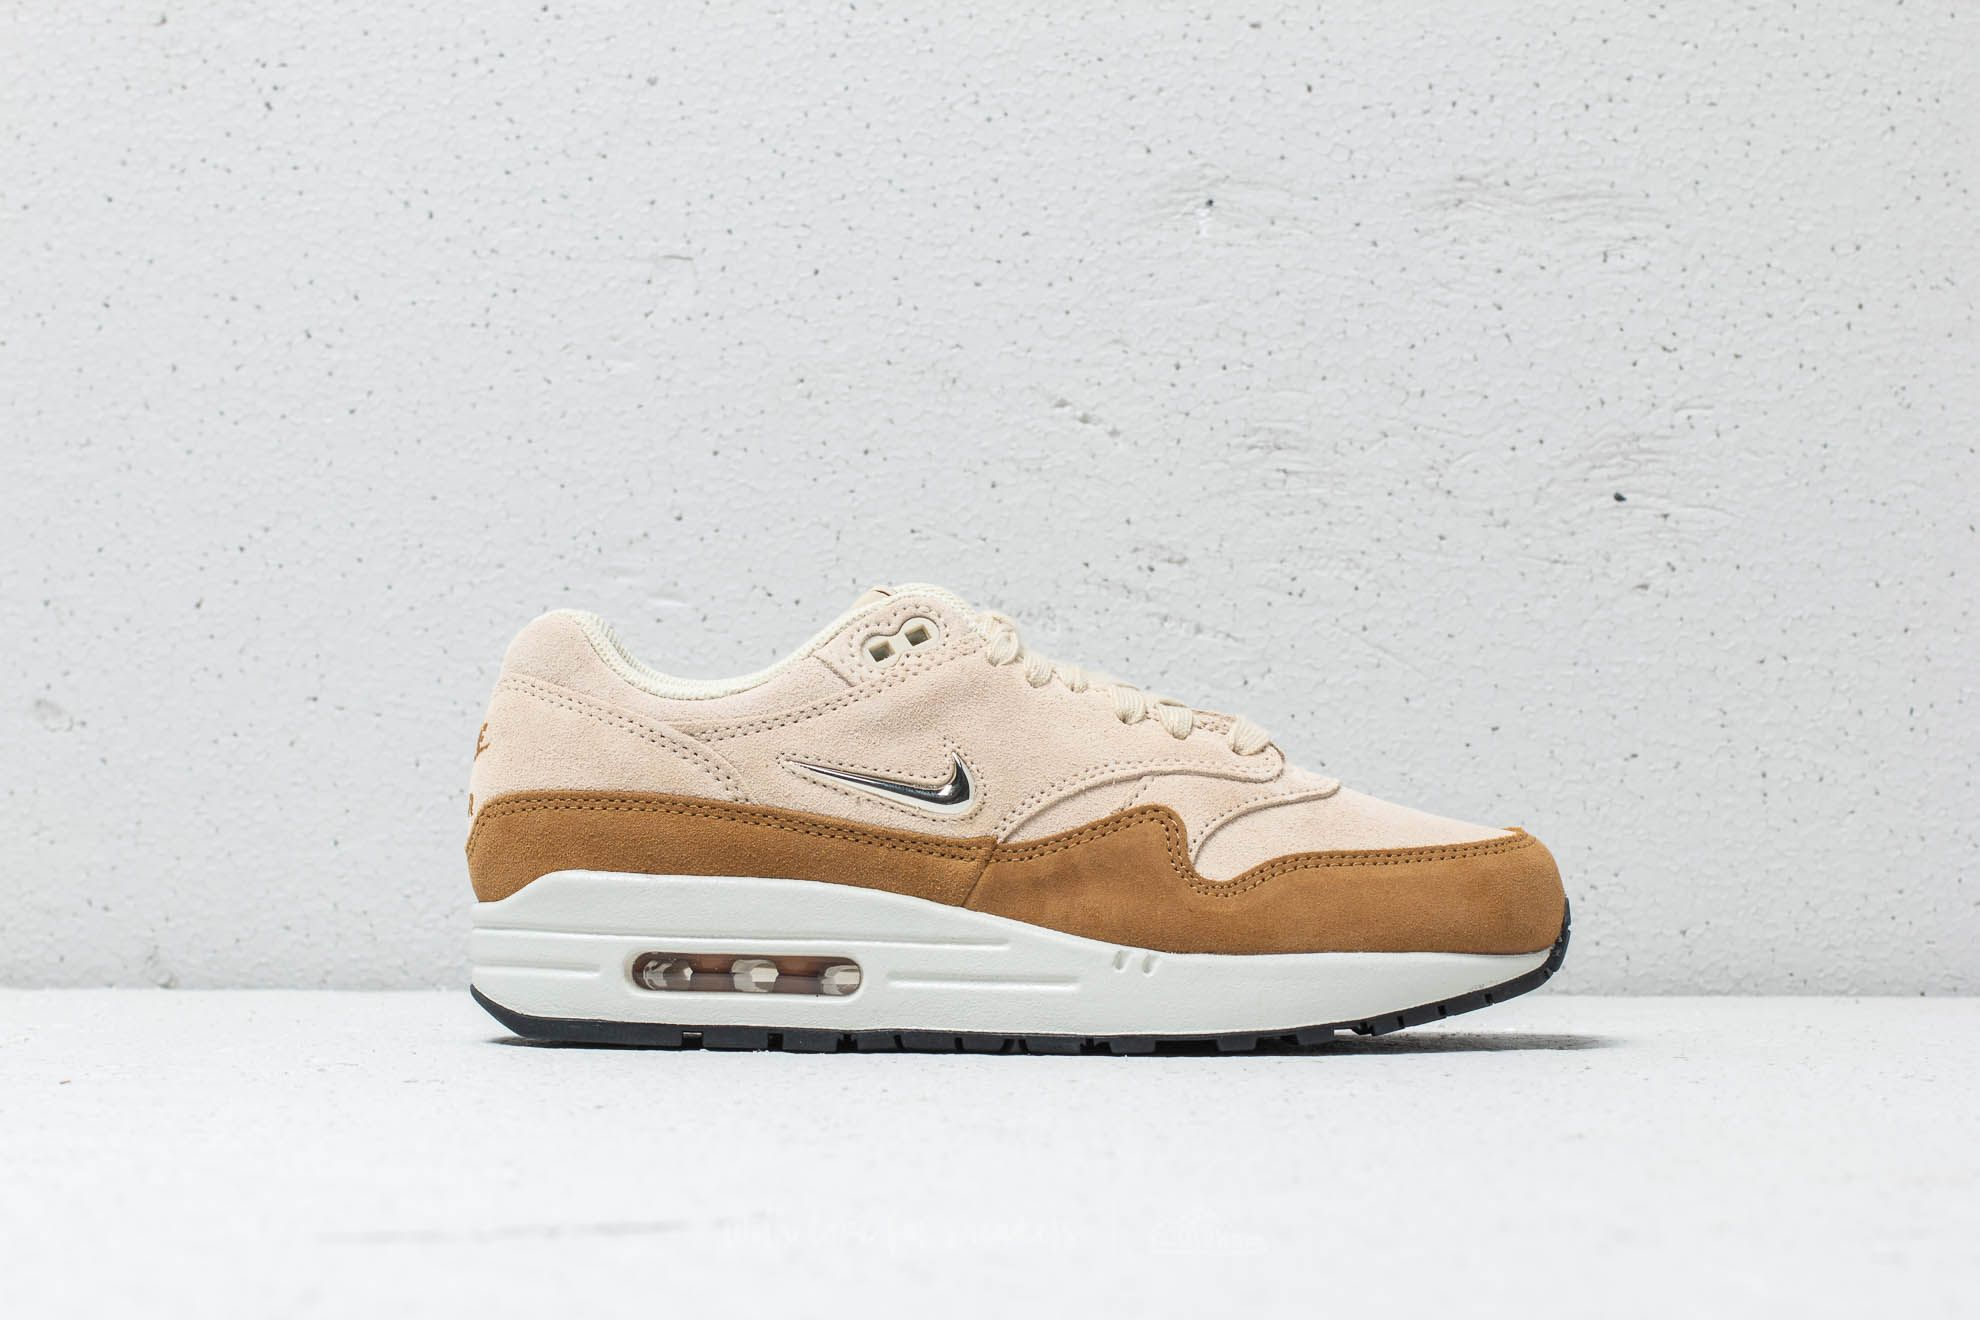 competitive price a4ccf c7cbd Nike Wmns Air Max 1 Premium SC Beach  Metallic Gold Grain at a great price